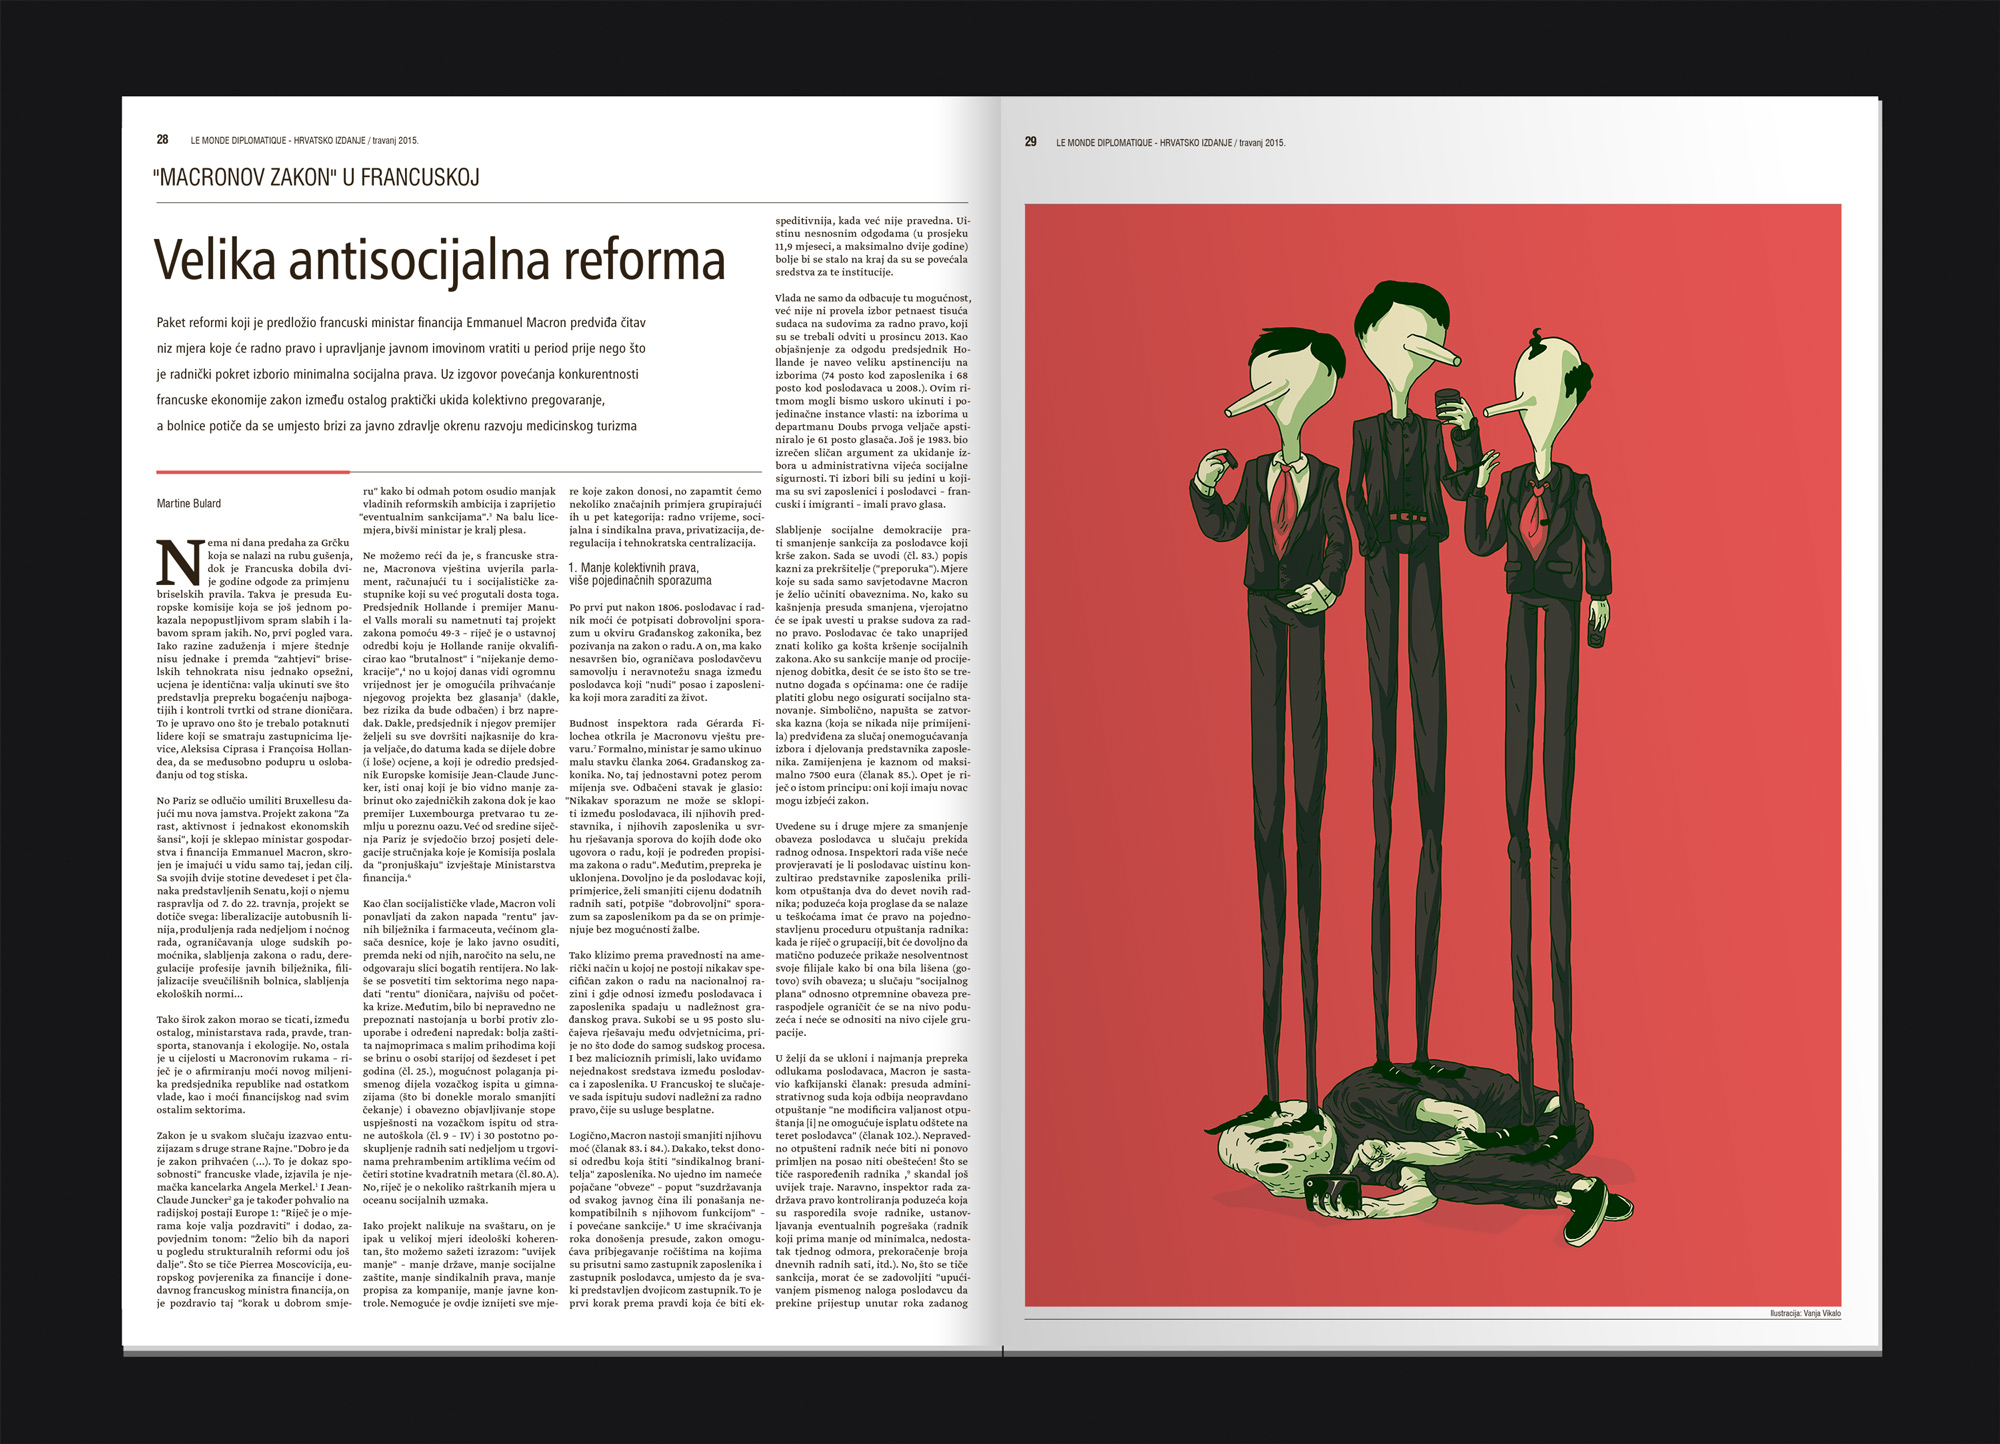 Le Monde Editorial illustration Linnch